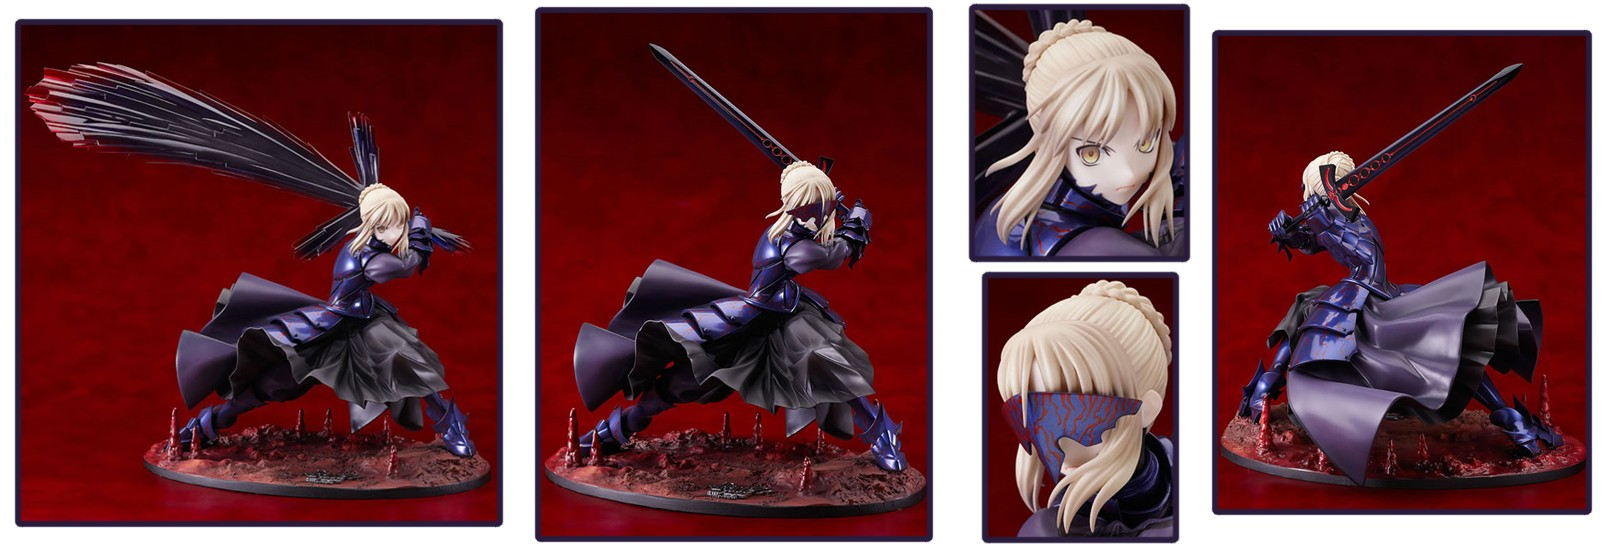 Good Smile Company – Fate/Stay Night - Saber Alter: Vortigern 1/7-Scale Figure